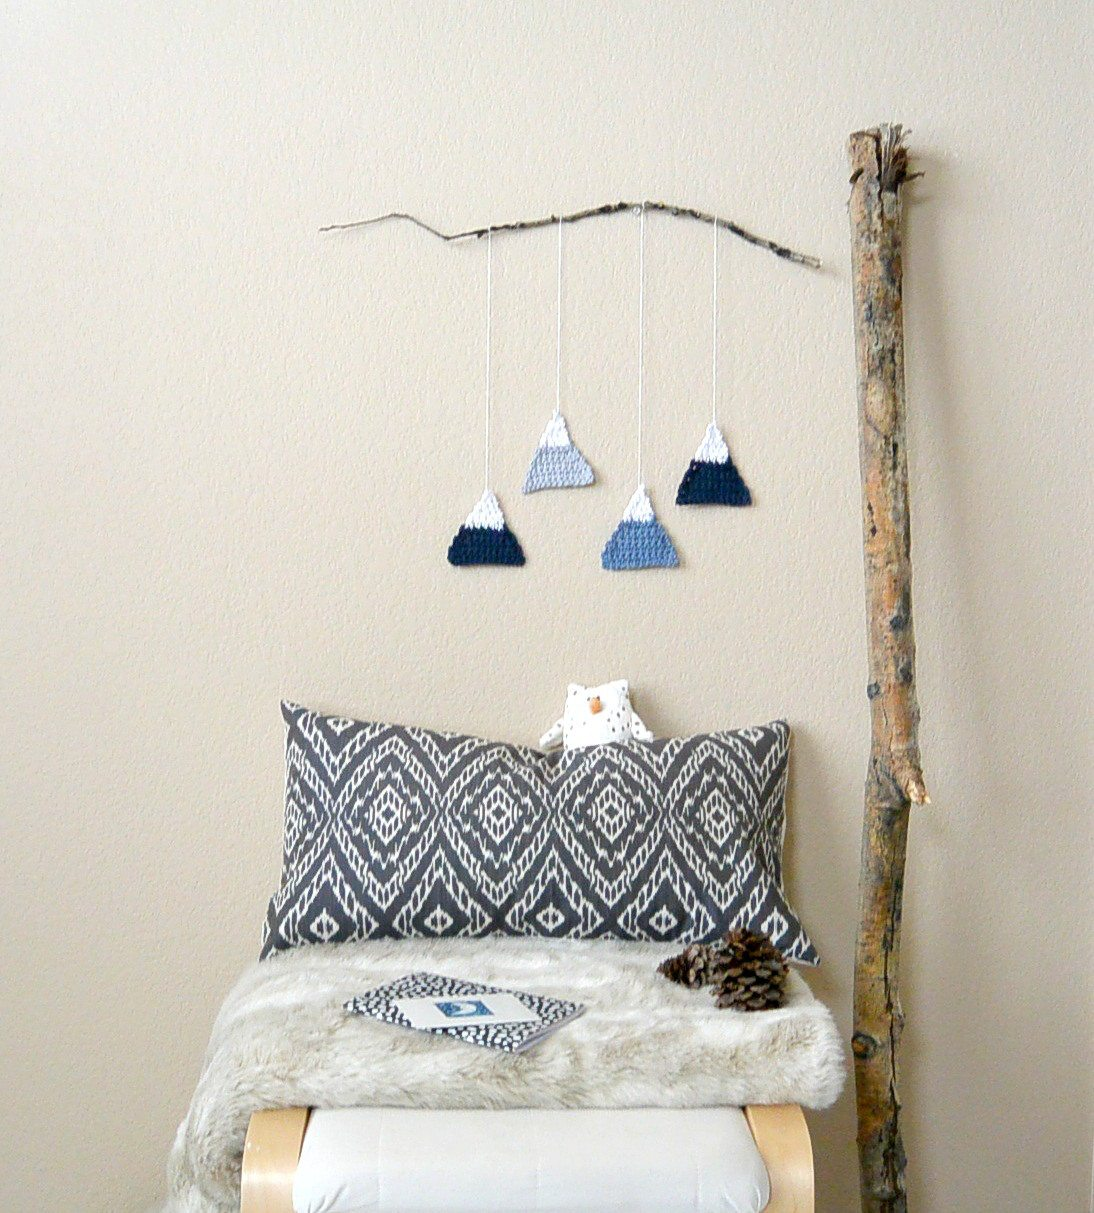 Crochet Wall Hanging : crochet wall hanging